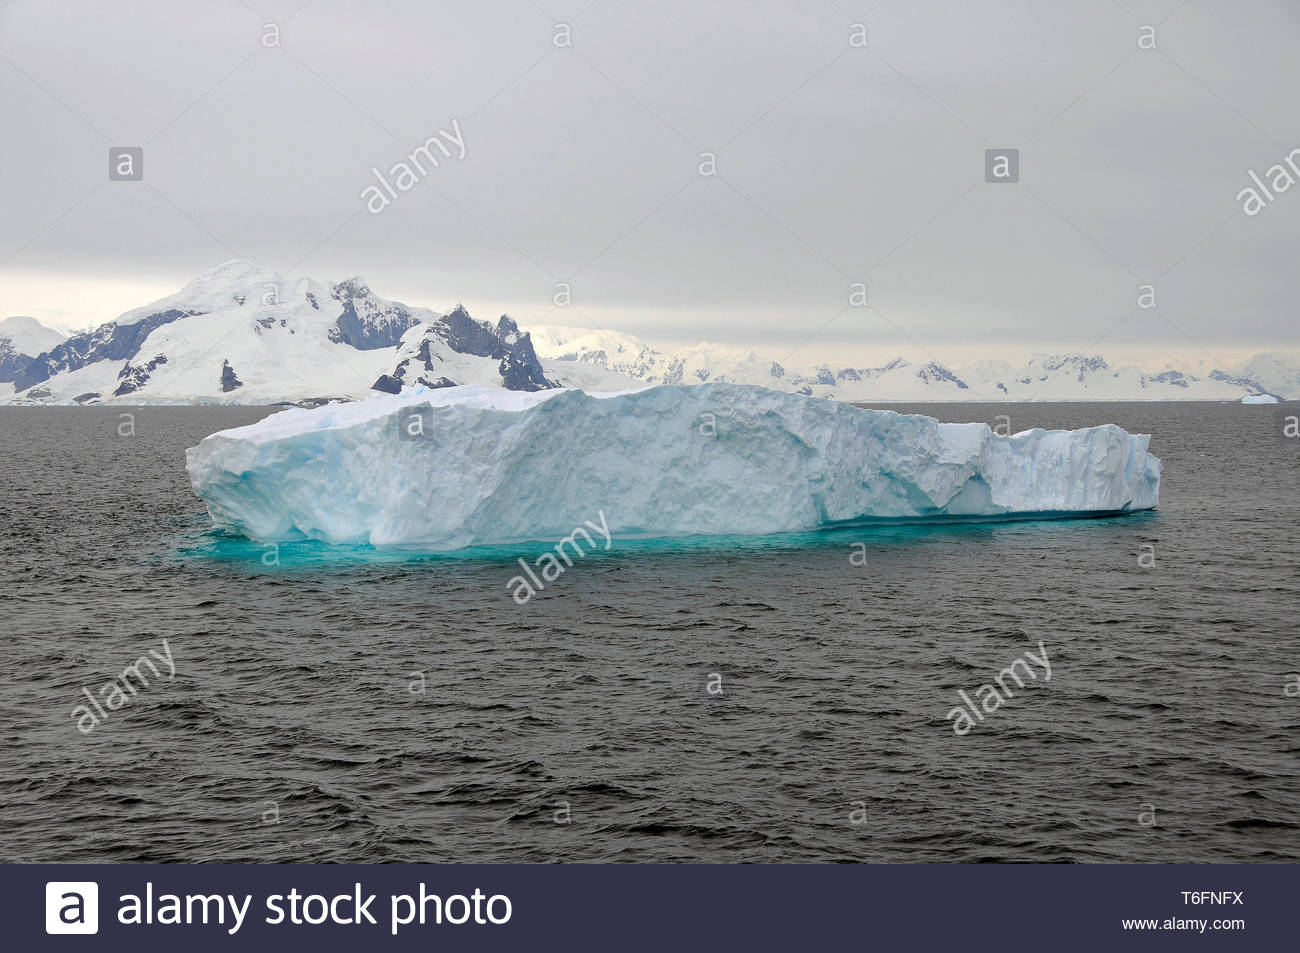 Drifting iceberg at Lemaire channel, Antarctic - Stock Image